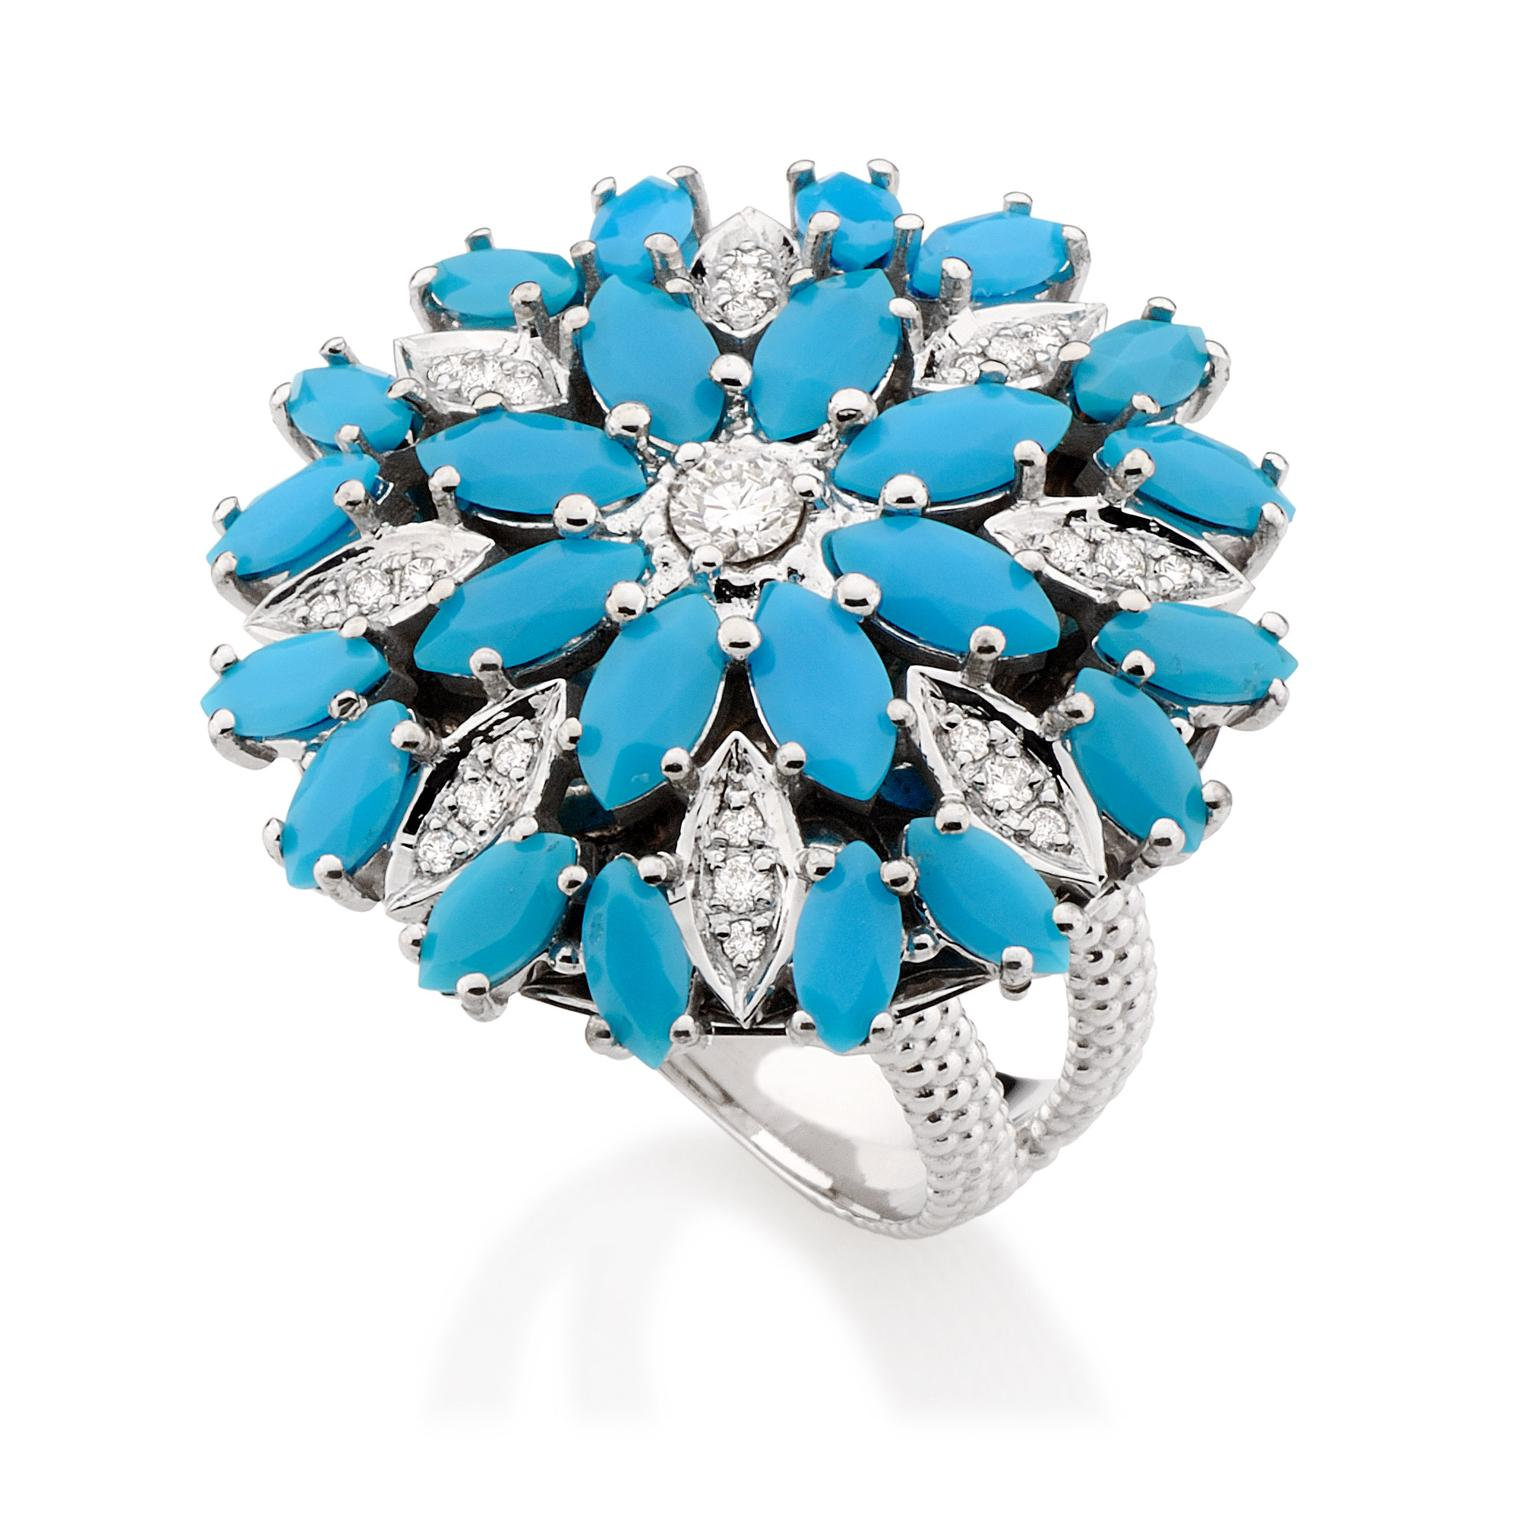 Carla-Amorim-Aquario-Ring-Zoom